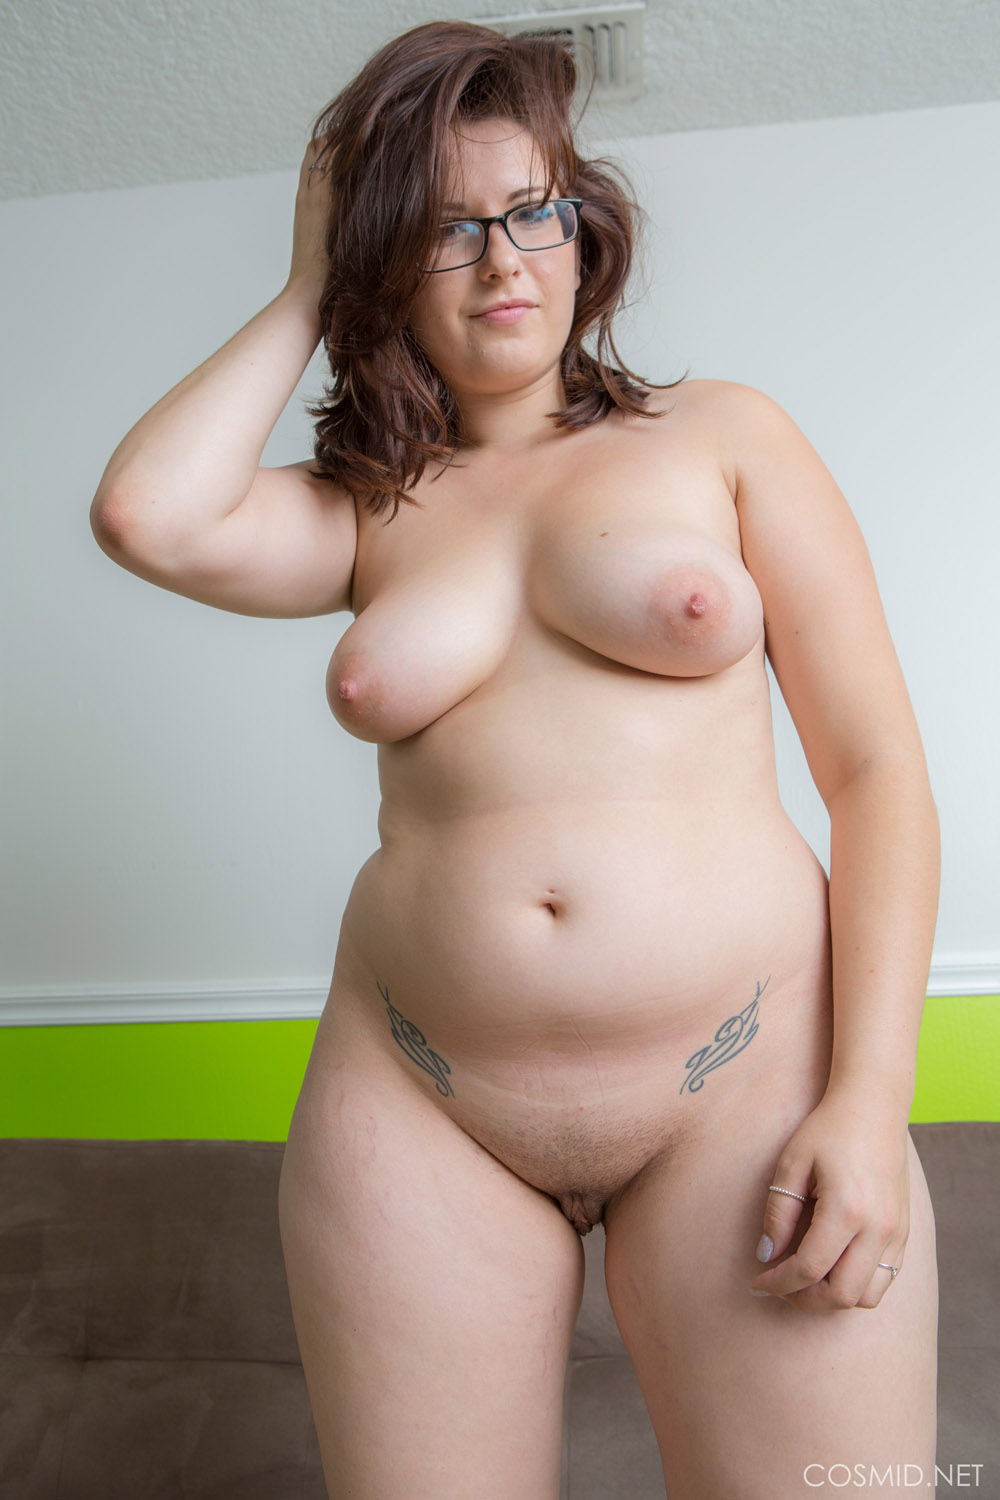 naked-pictures-of-chubby